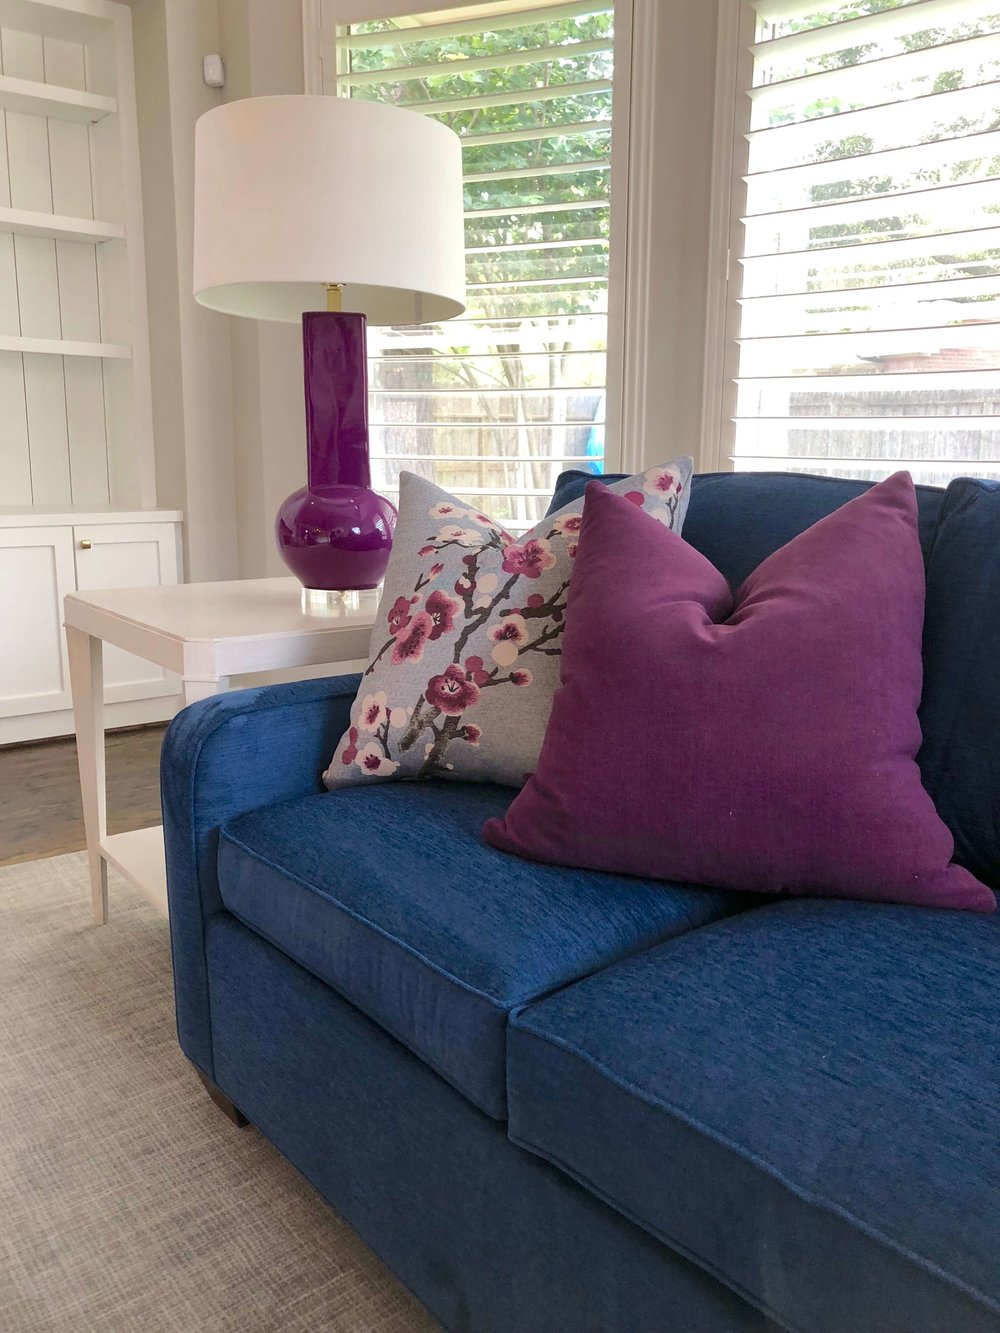 PROJECT SNEAK PEEKS | Colorful sofa, pillows and lamp in living room | Carla Aston, Designer